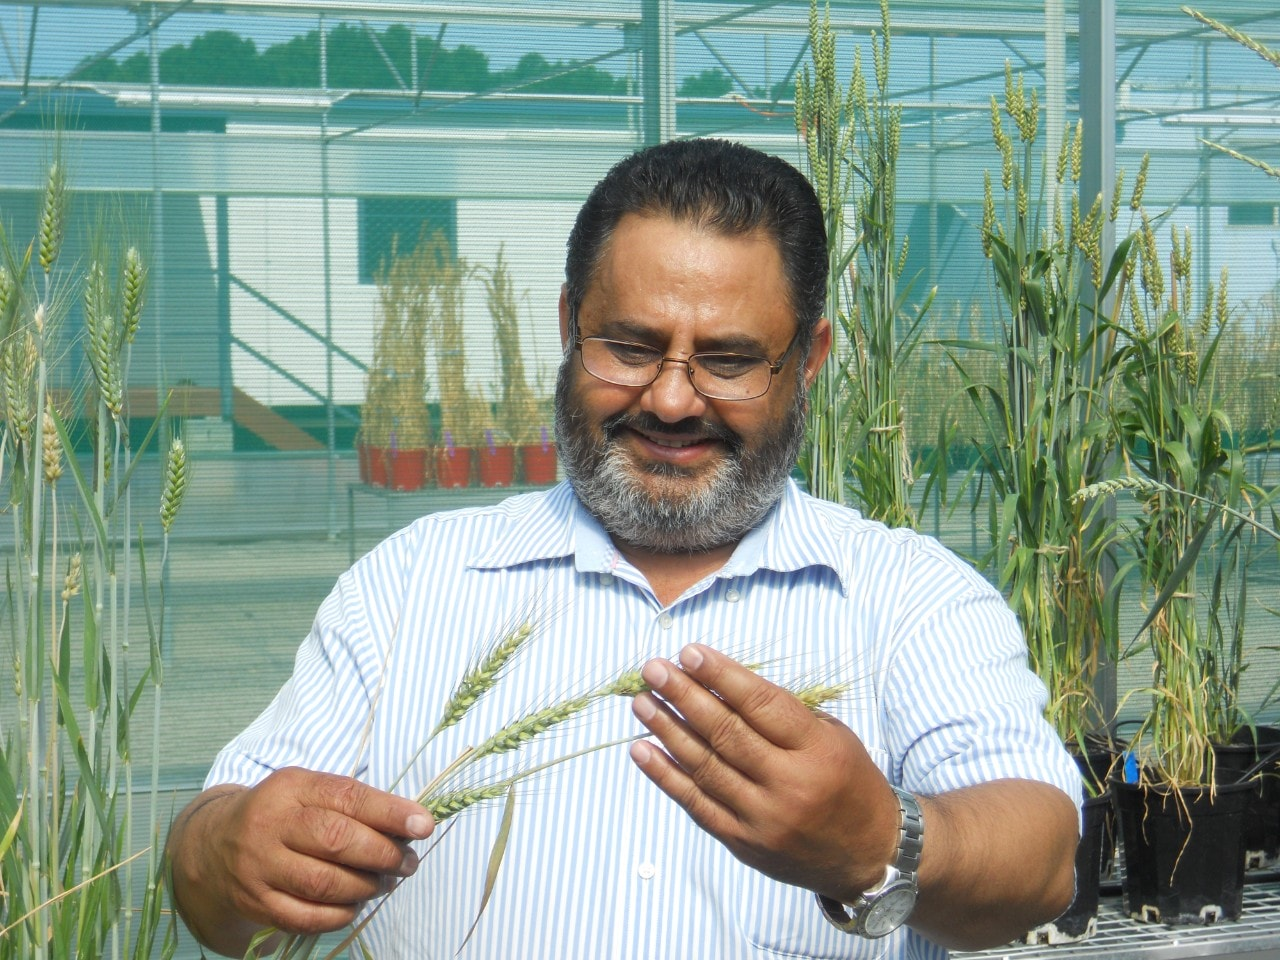 Professor Harbans Bariana from the Sydney Institute of Agriculture.